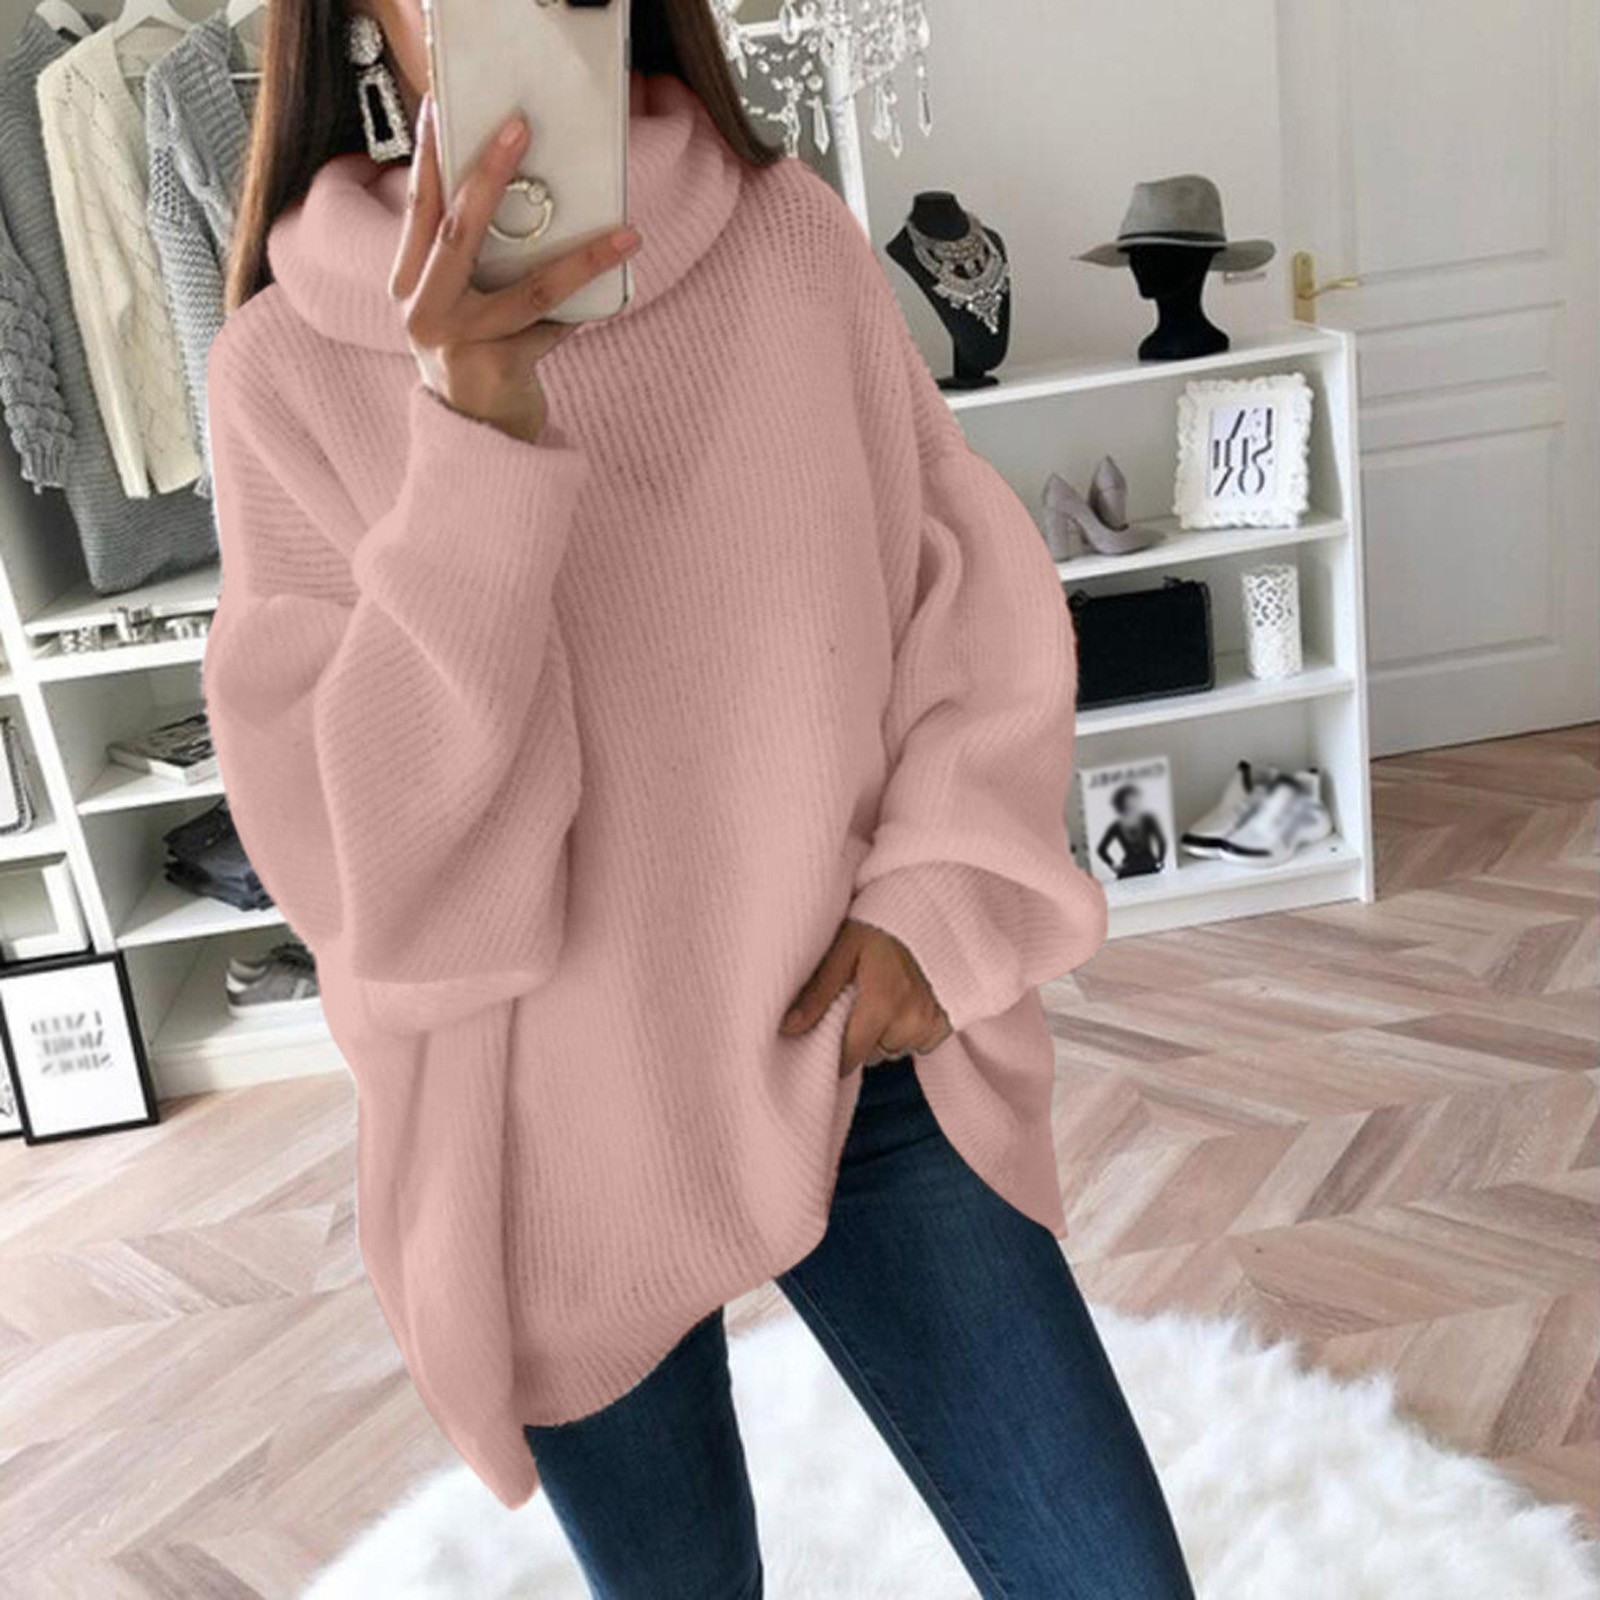 4# Women Sweater Pullovers Pull Femme Hiver Solid Casual O neck Shoulder Pocket Knitted Sweater Knitwear Top Winter Clothes